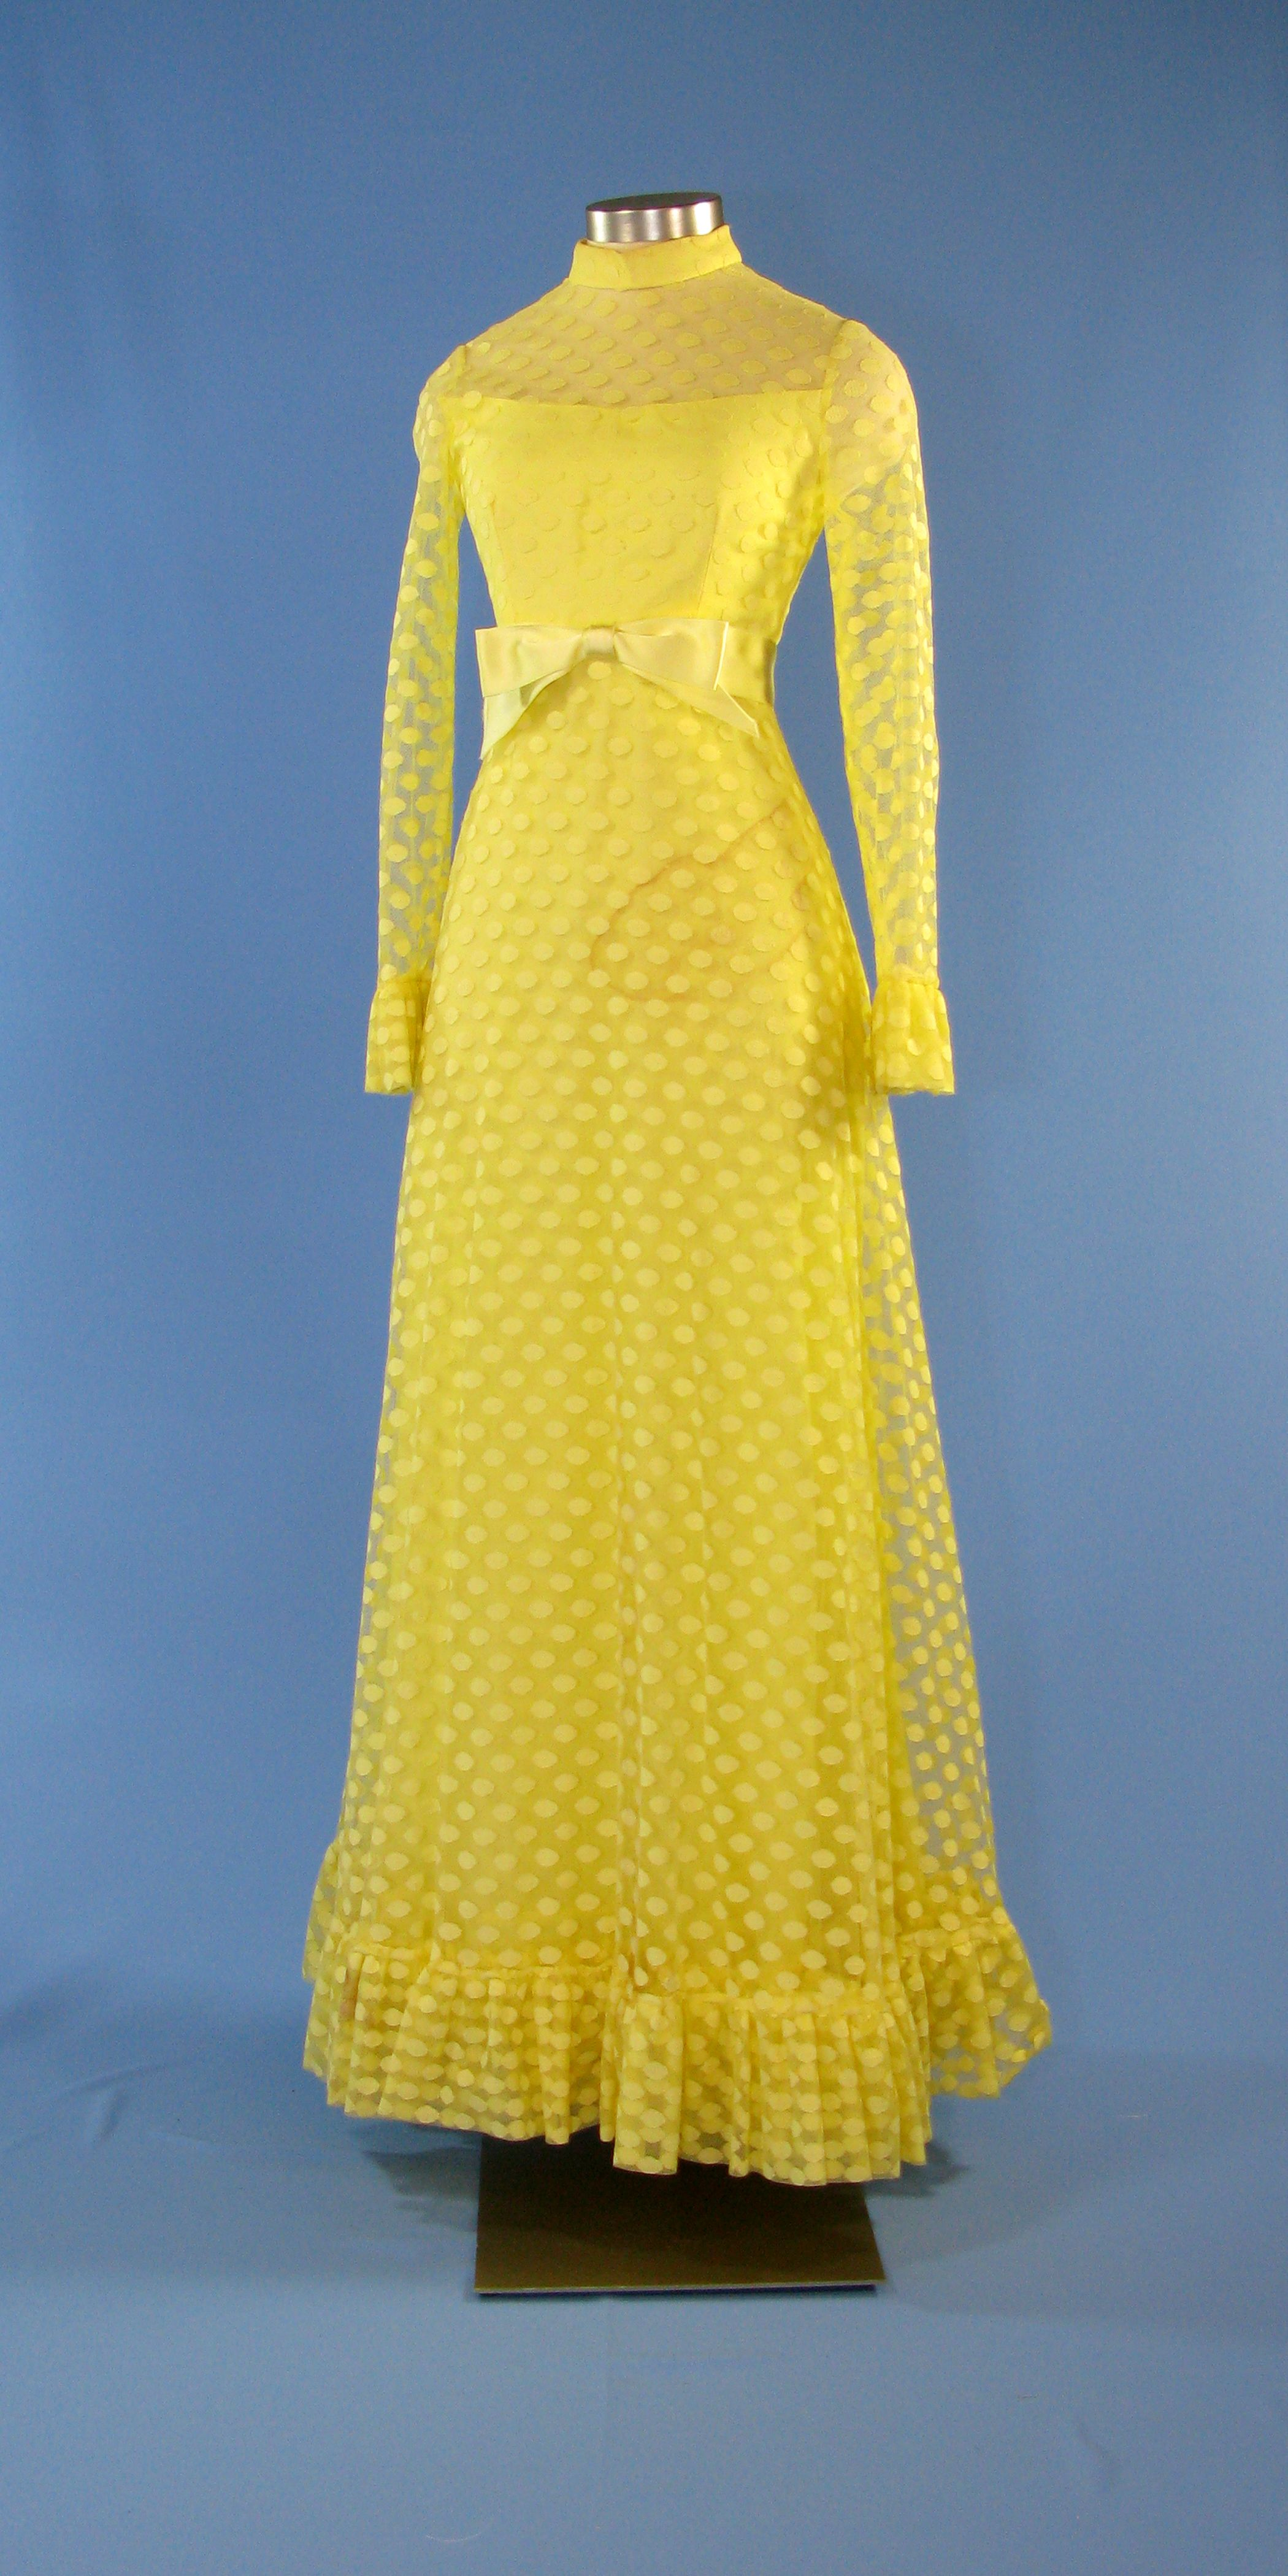 a lemon yellow polka dot gown designed by frankie welch for betty ford the yellow chiffon. Black Bedroom Furniture Sets. Home Design Ideas